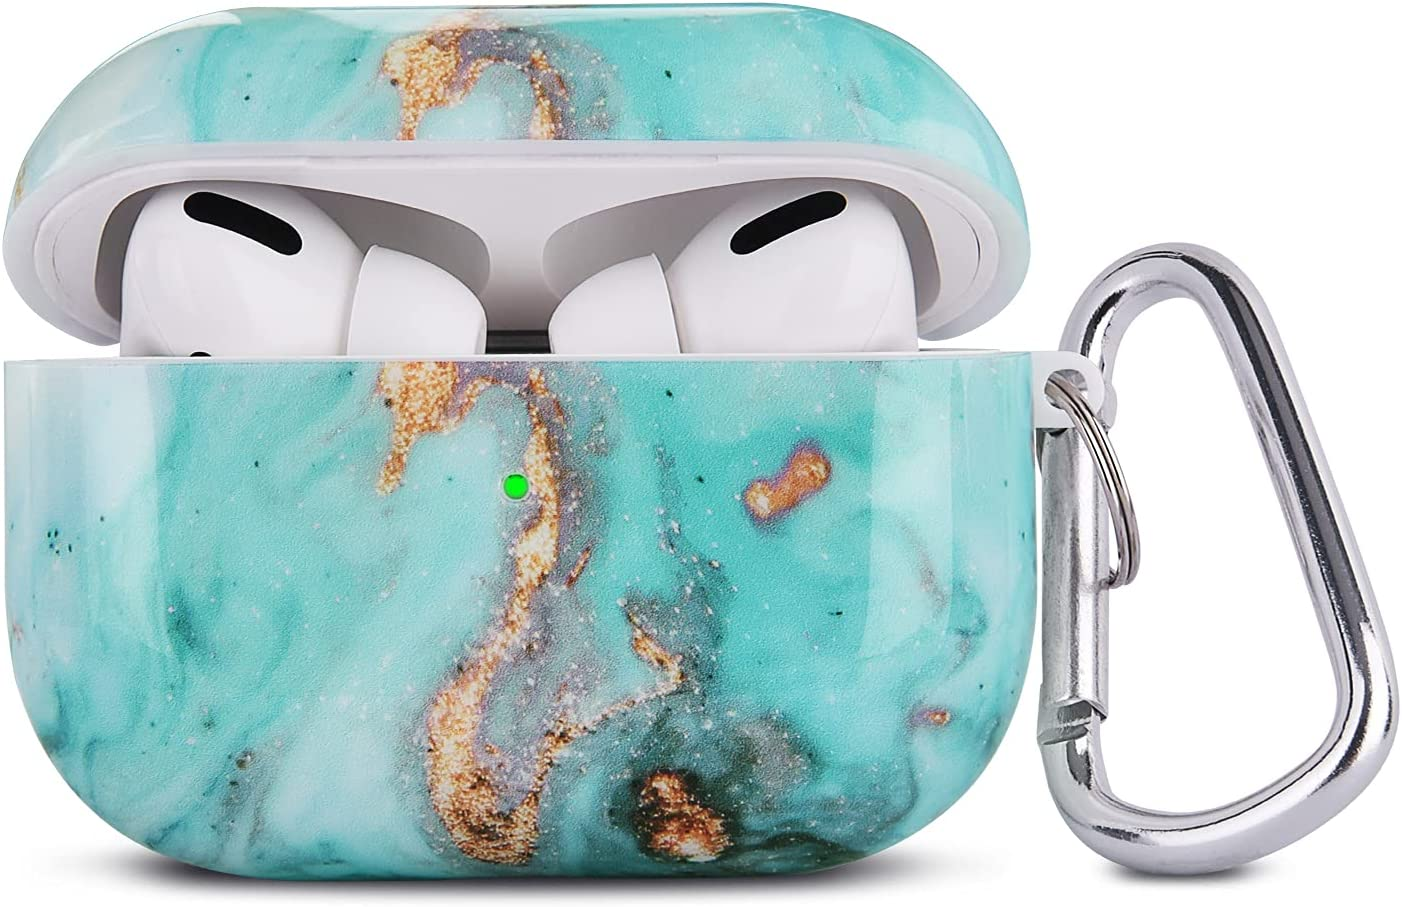 QINGQING Airpods Pro Case, 3 in 1 Cute Marble Airpod Pro Protective Hard Case Cover Shockproof Women Girls Men with Keychain Strap for Apple Airpods 3 Charging Case (Green)